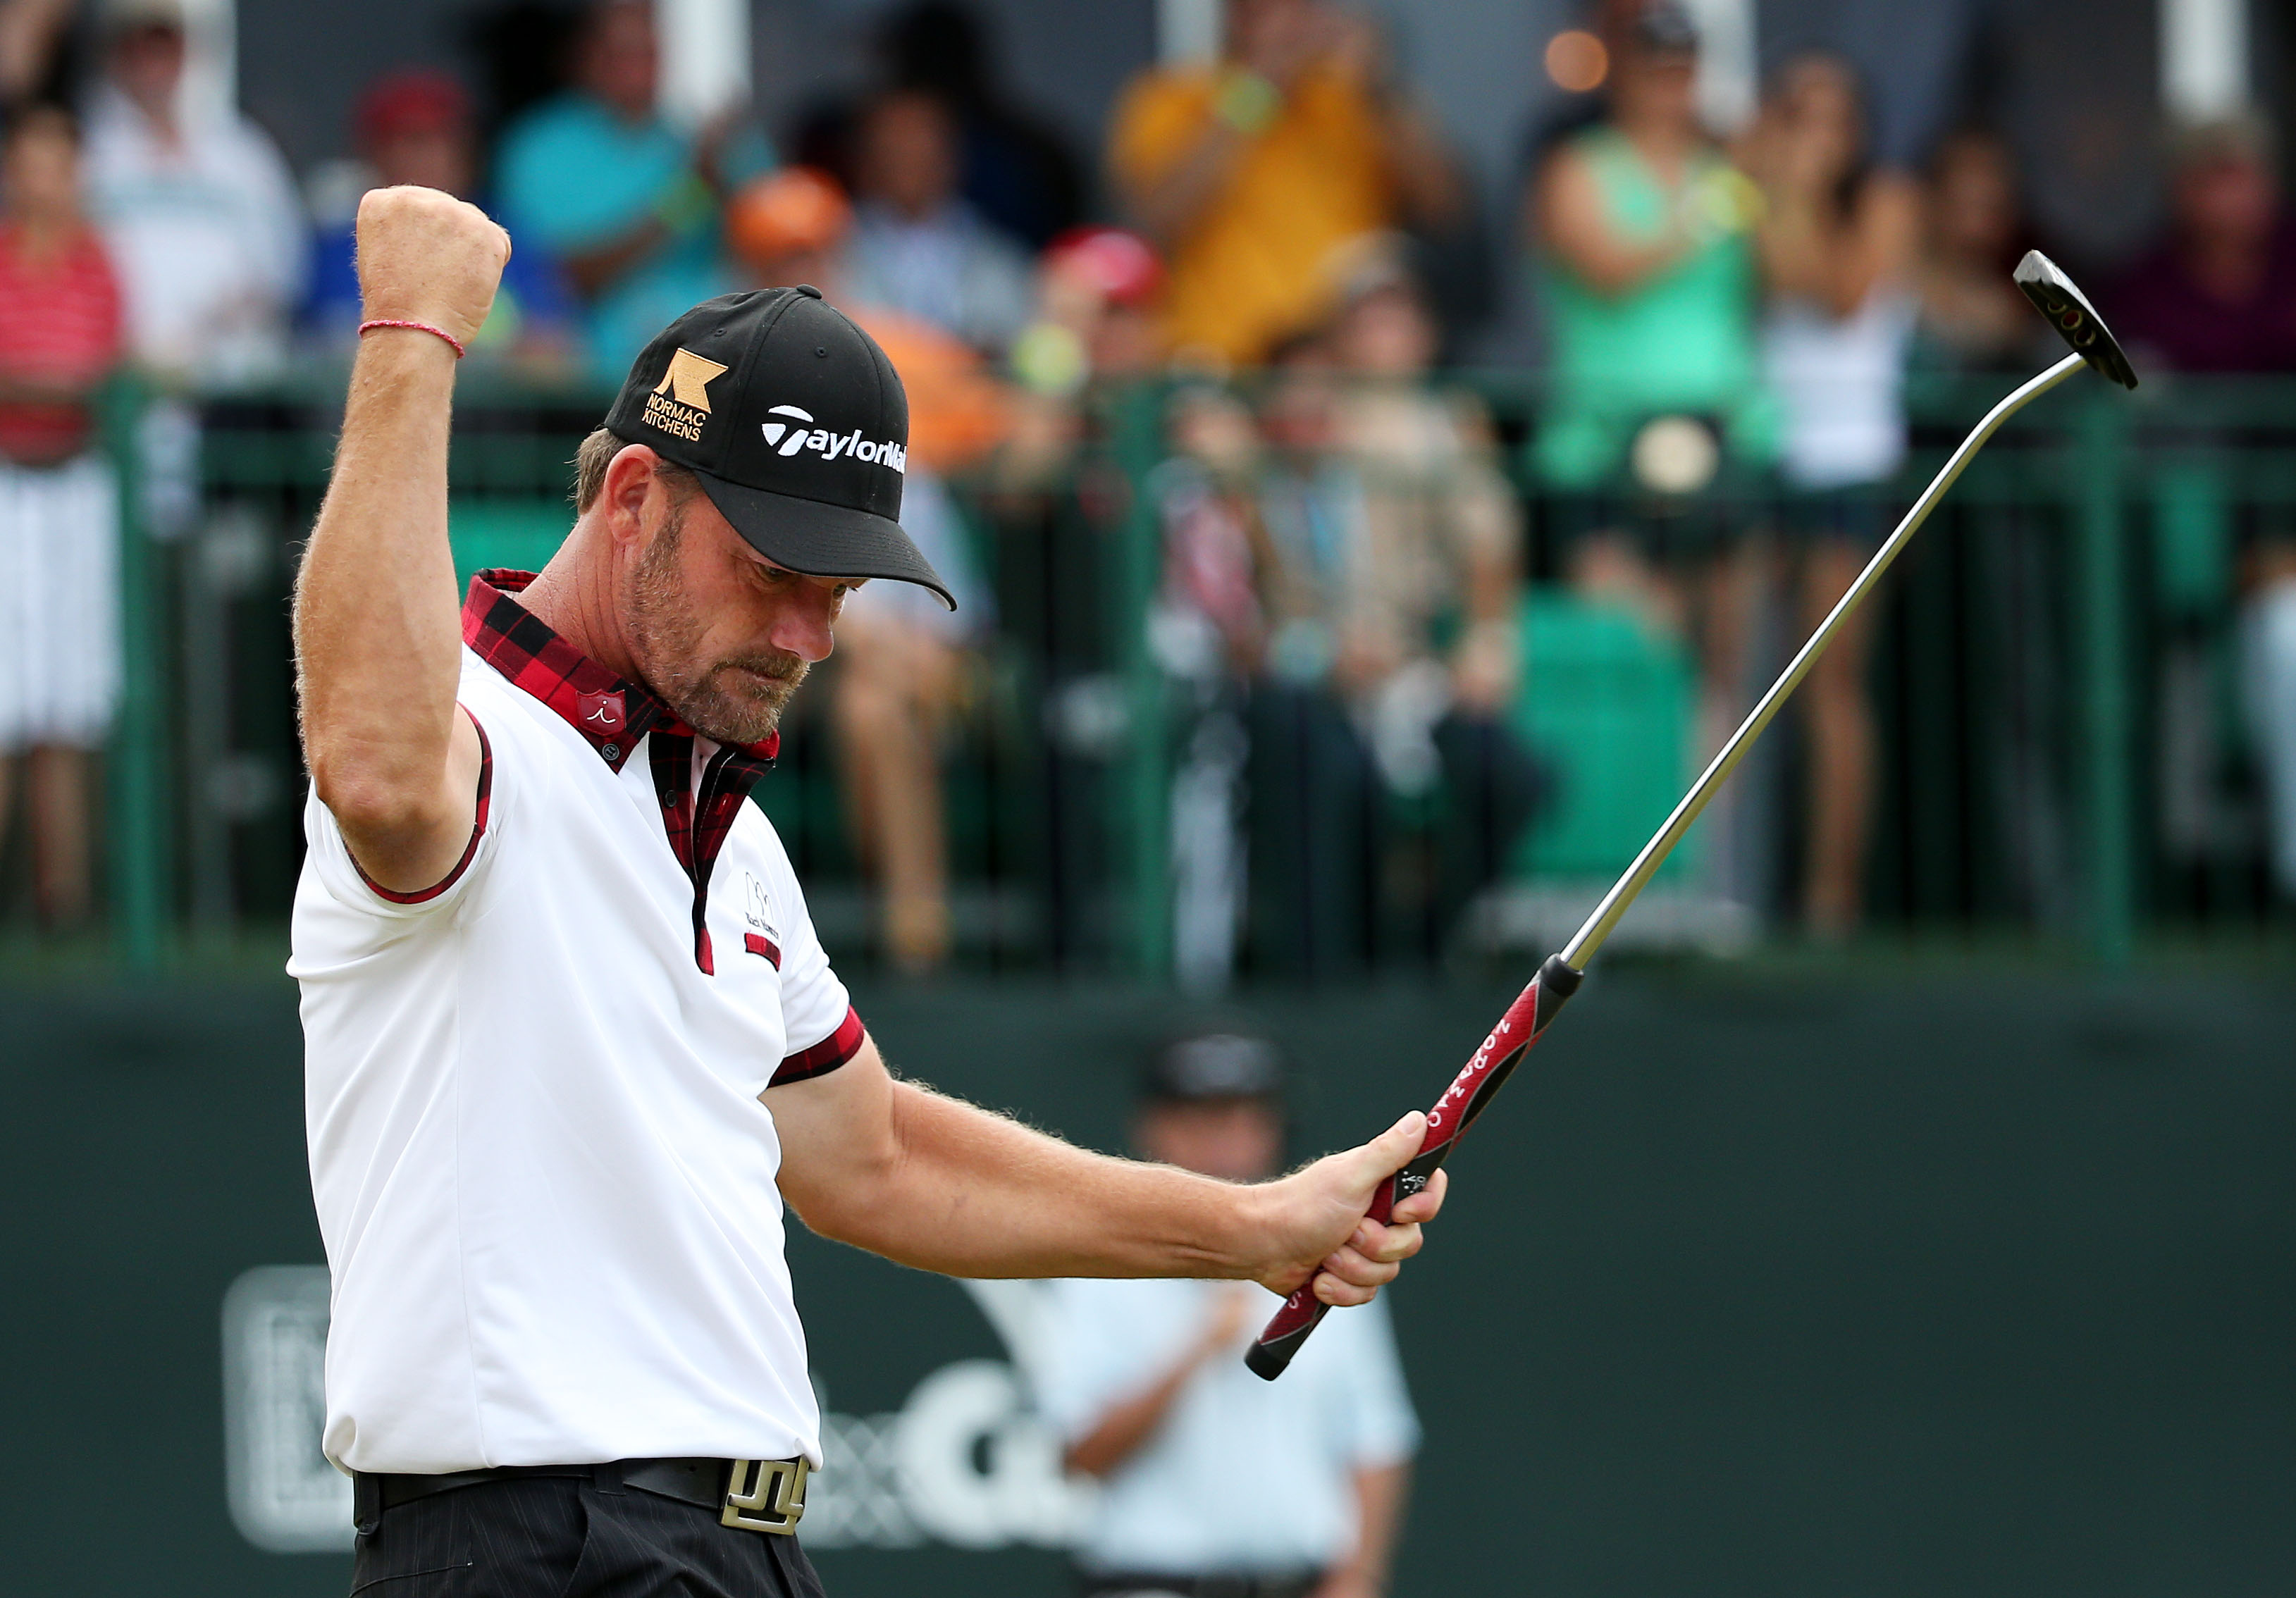 Alex Cejka celebrates on the 18th green following his playoff victory at the Puerto Rico Open.